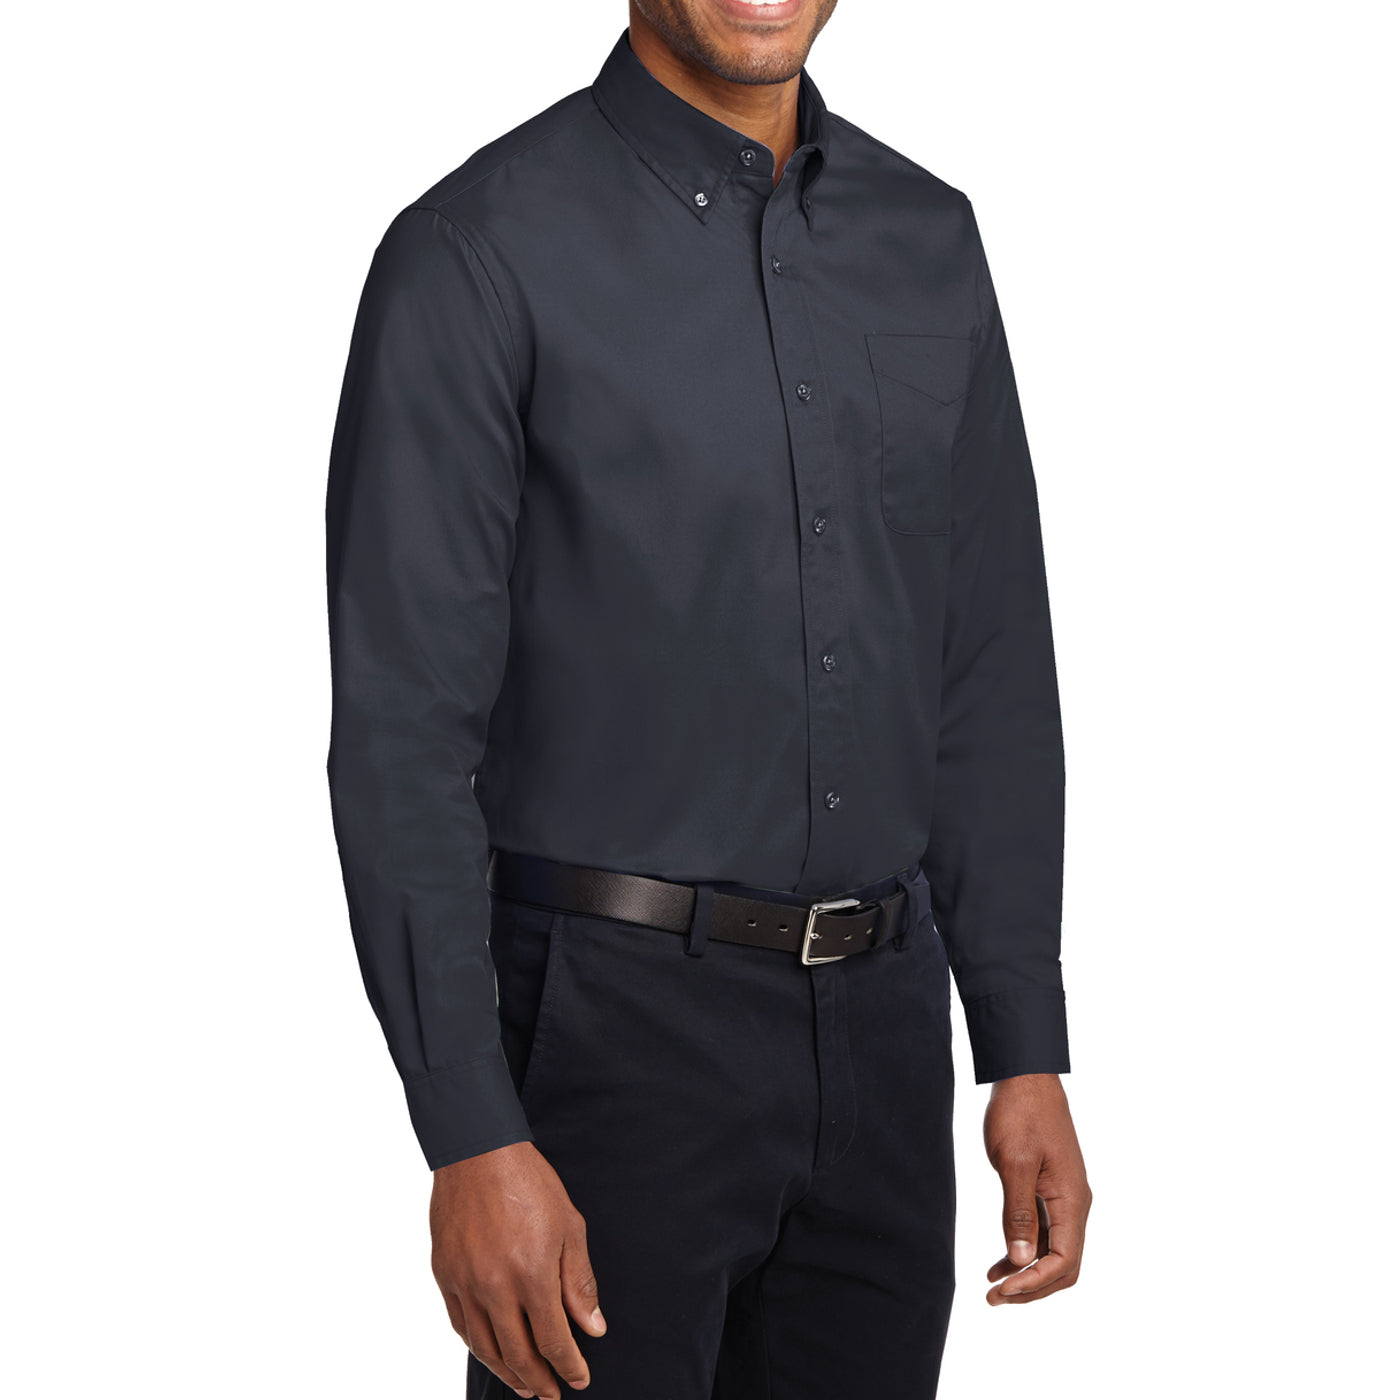 Men's Long Sleeve Easy Care Shirt - Classic Navy/ Light Stone - Side